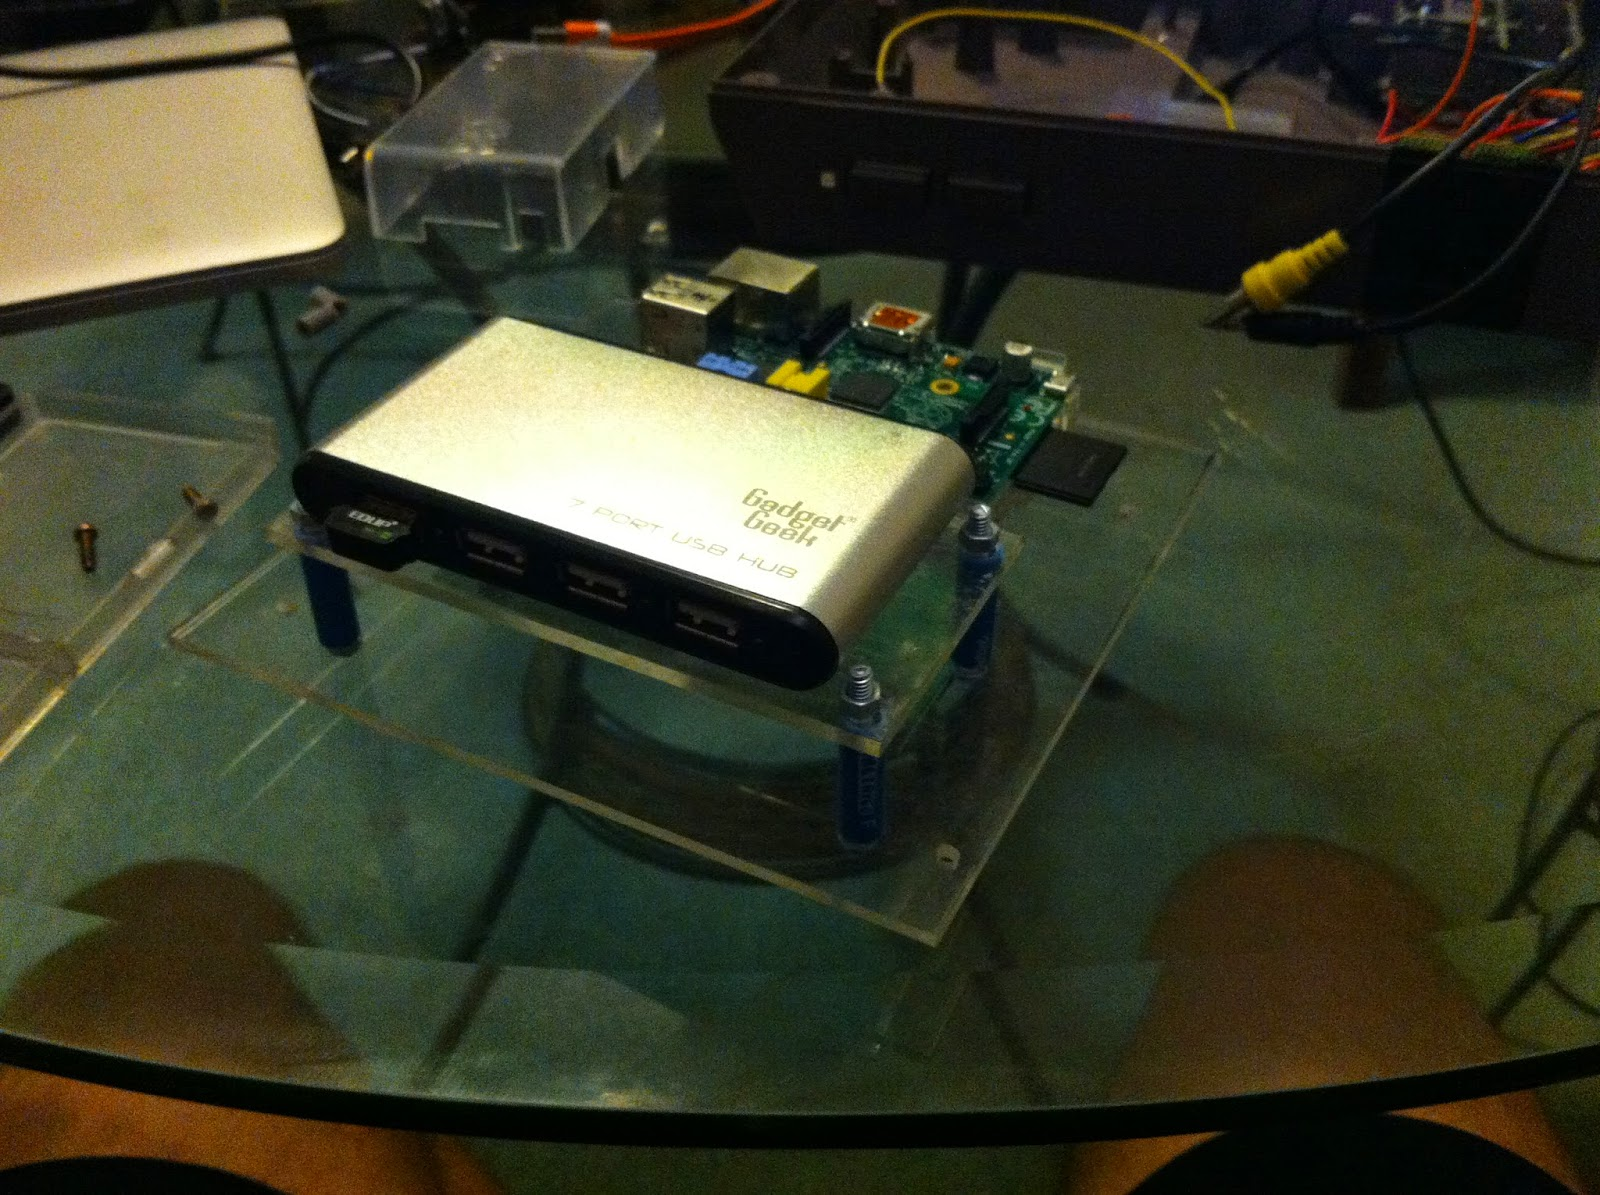 Retro Projects Raspberry Pi Installed Into An Old Broken Nes Usb On Off Power Switch Circuit By Mausberry Circuits You Can See Here That Sticking Out The Front Of Hub Is A Wifi Dongle This One Really Small And Works Box With